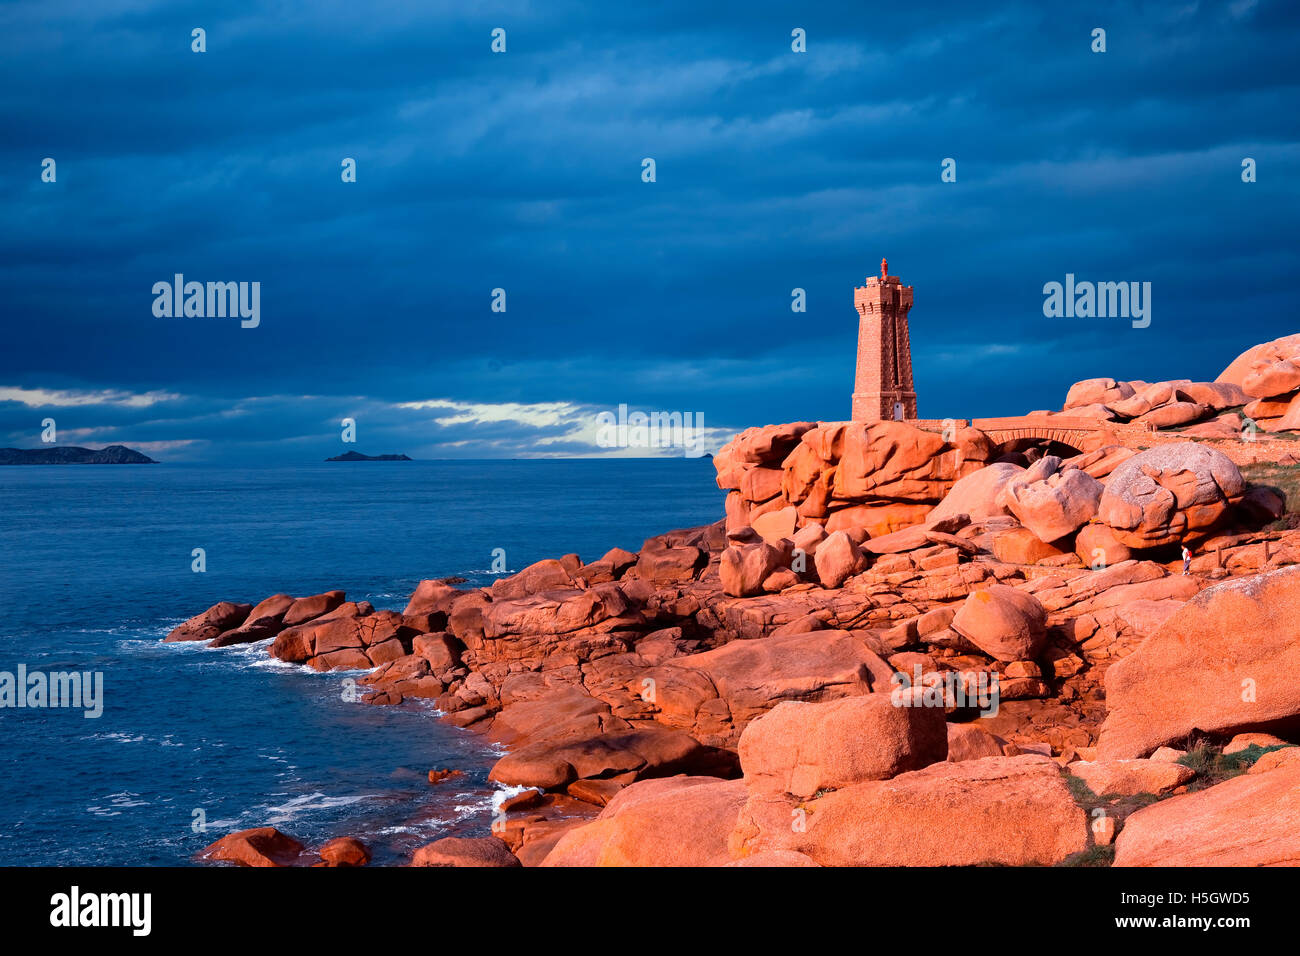 Ploumanac'h lighthouse in Brittany, France - Stock Image